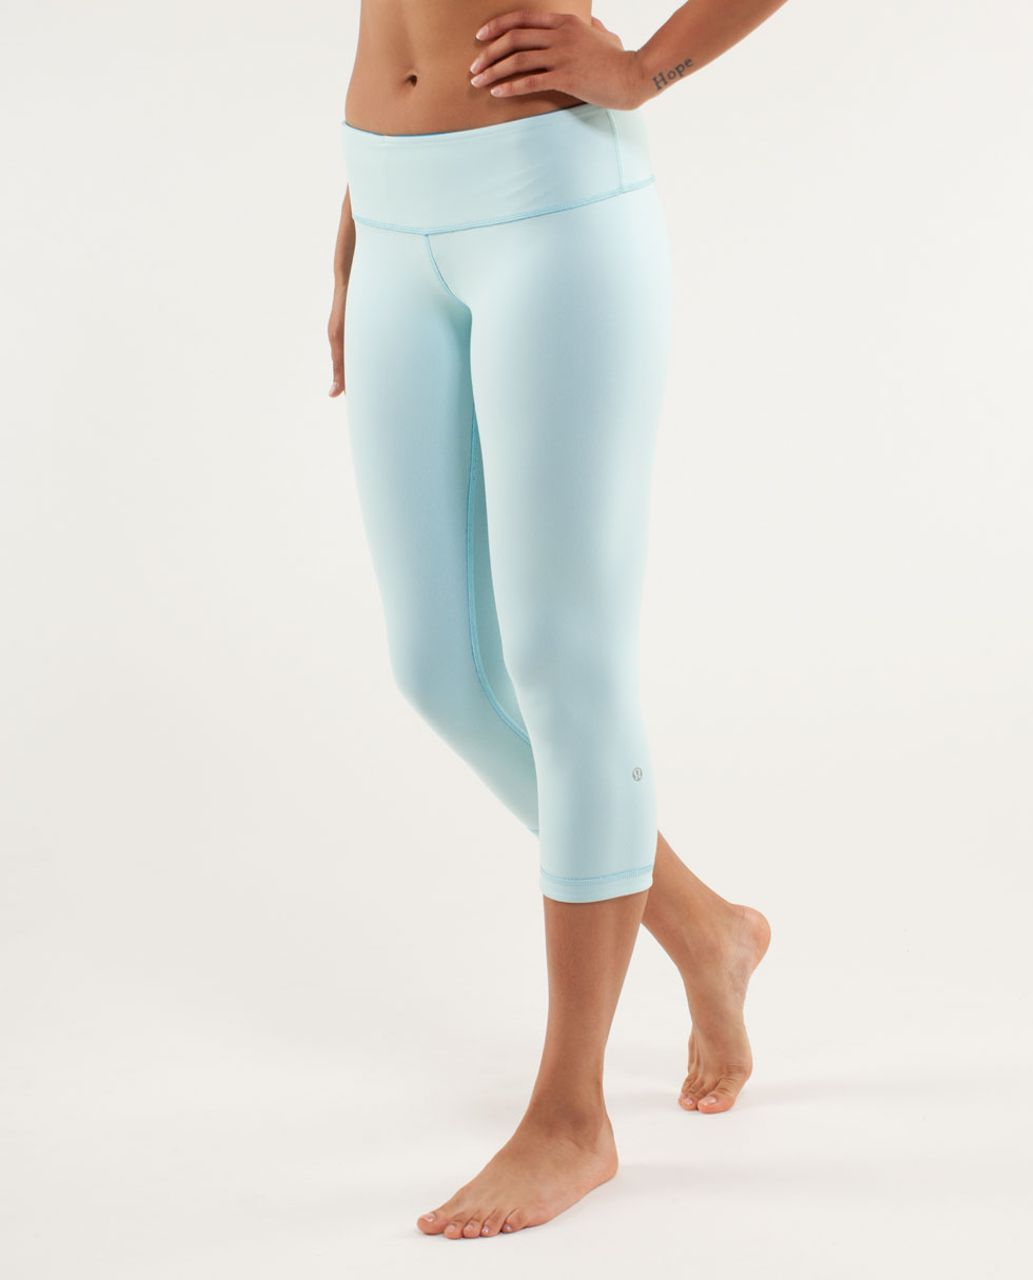 Lululemon Wunder Under Crop *Reversible - Beach Blanket Blue / Aquamarine